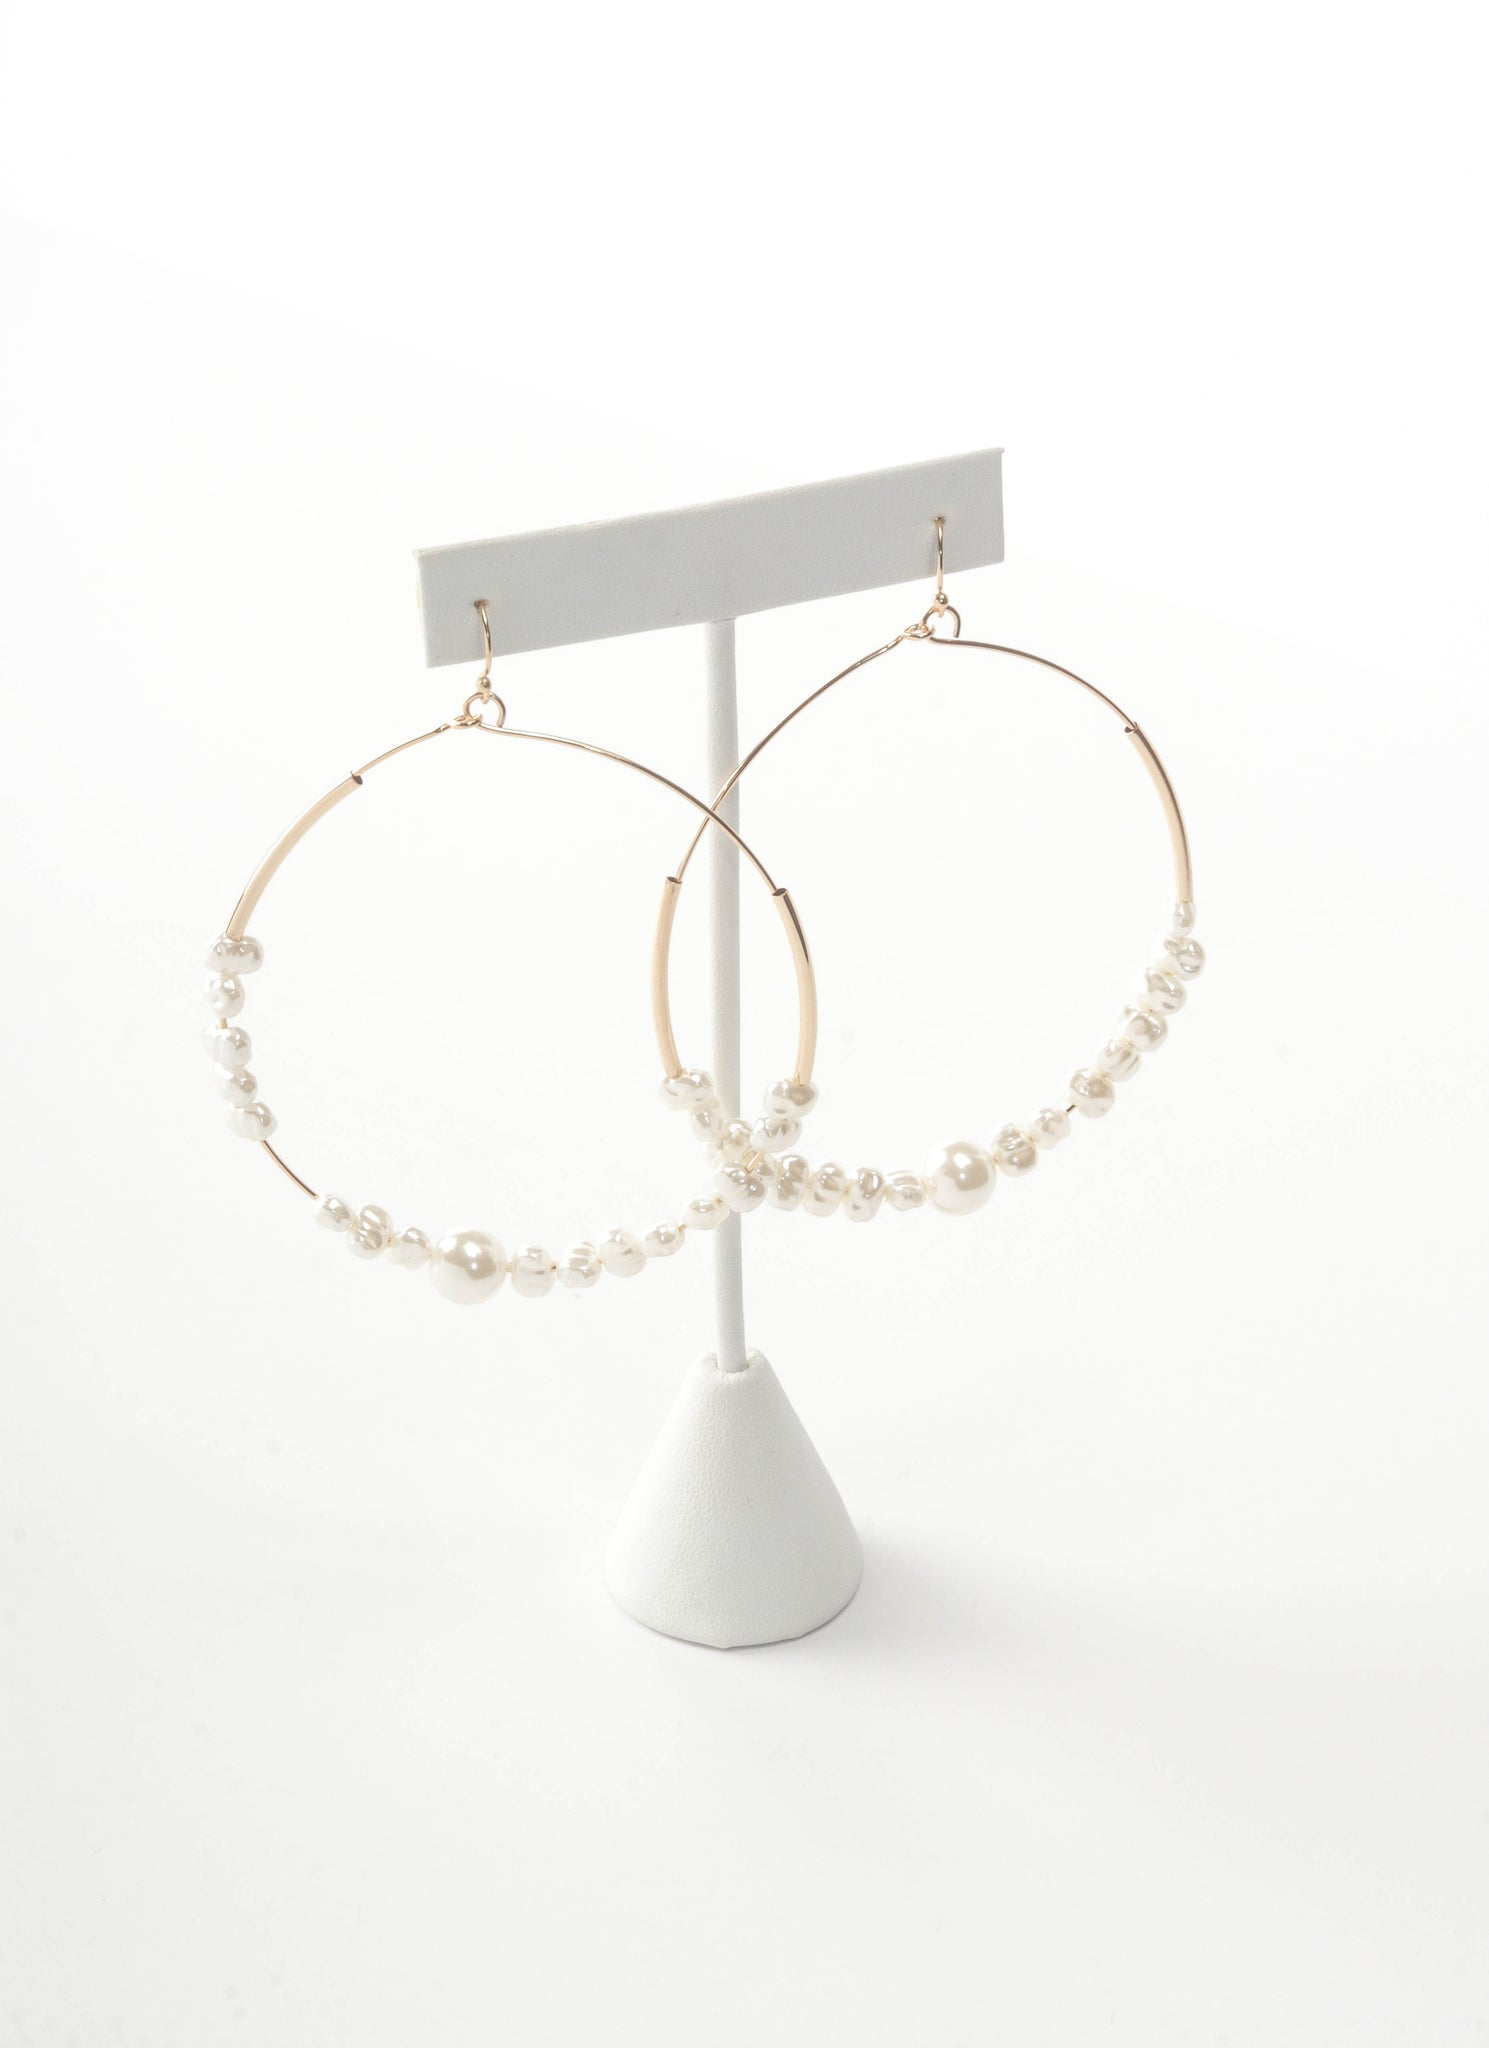 Gold hoops earrings with pearls